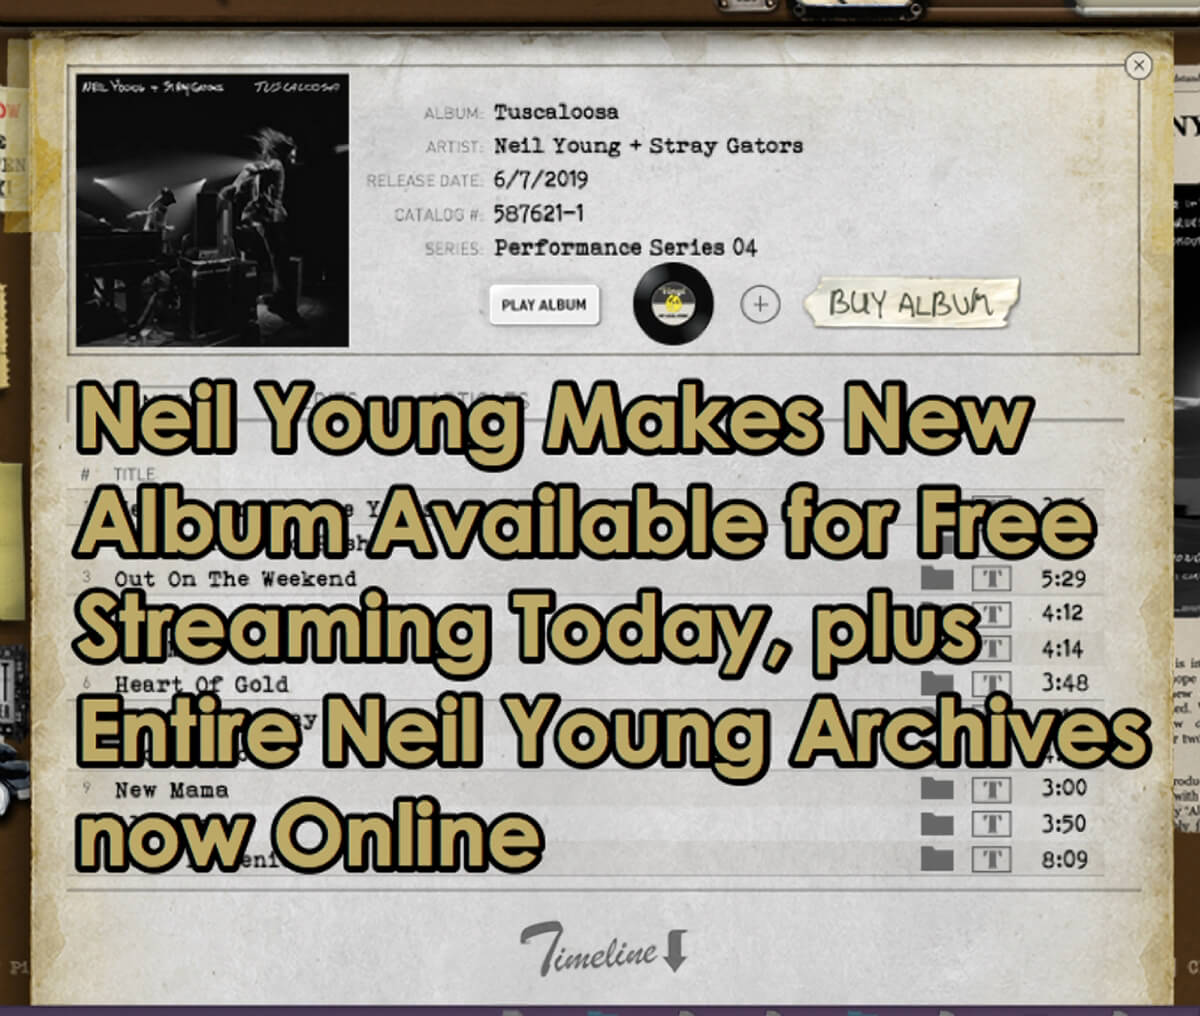 Neil Young Makes New album available streaming